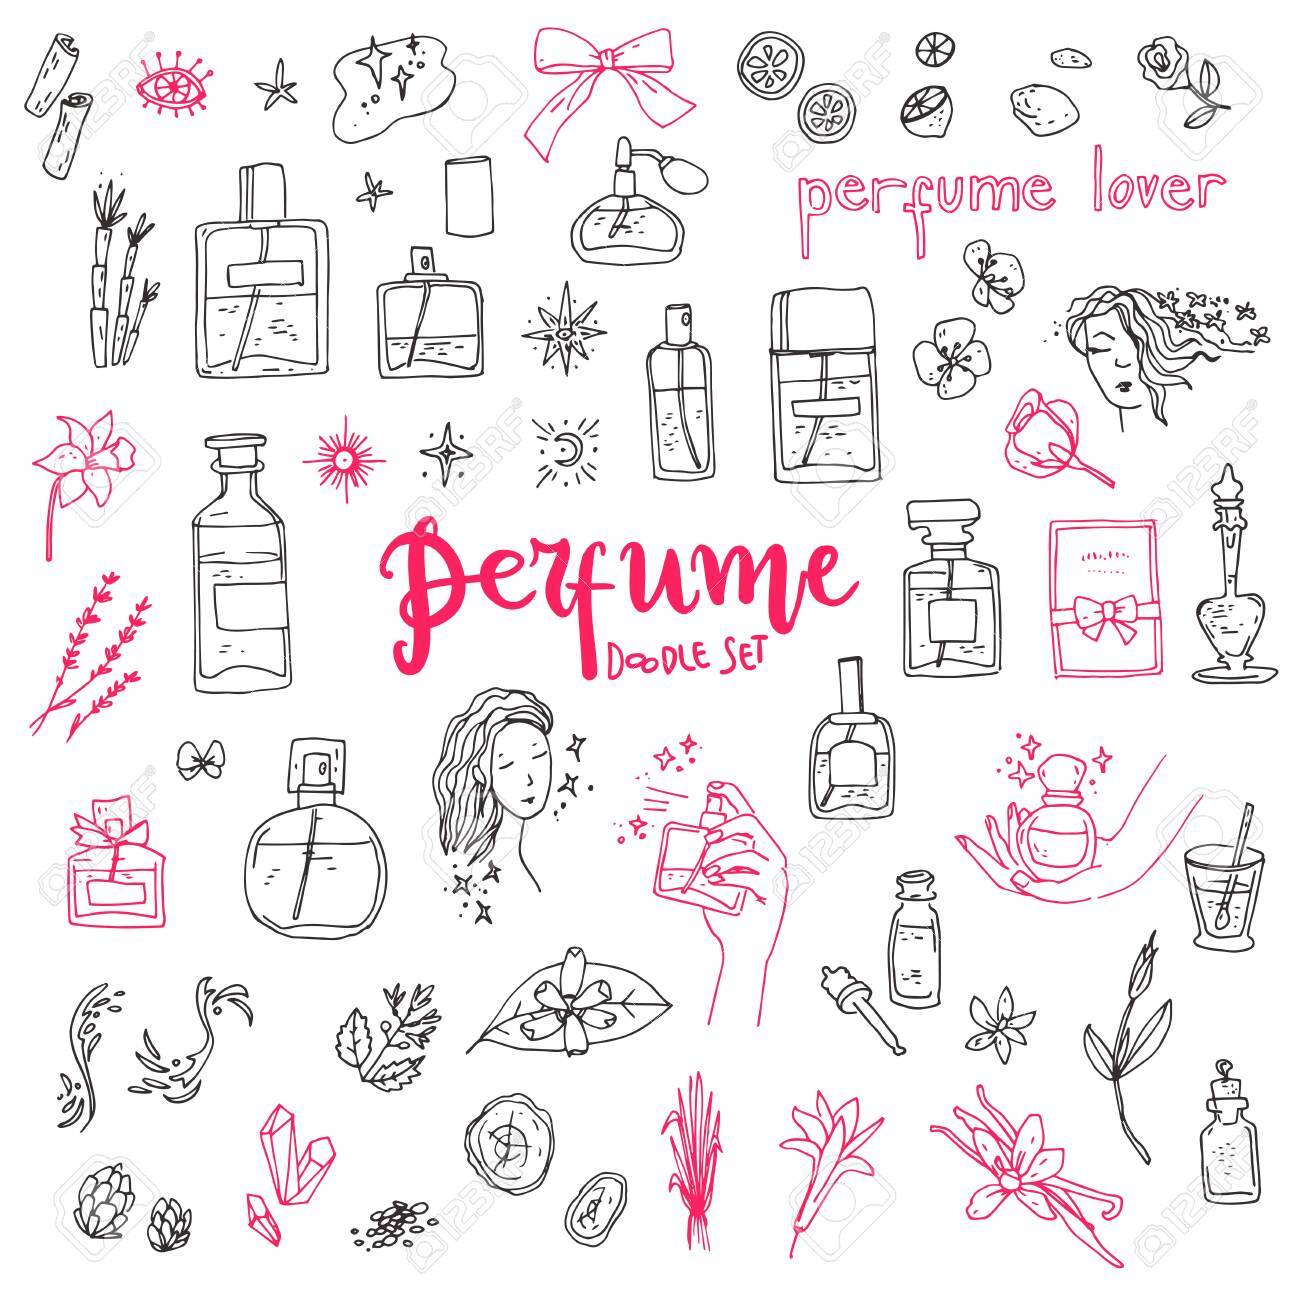 Perfume doodle set. Bottles, ingredients and decorative elements, simple cute style. - 143539457